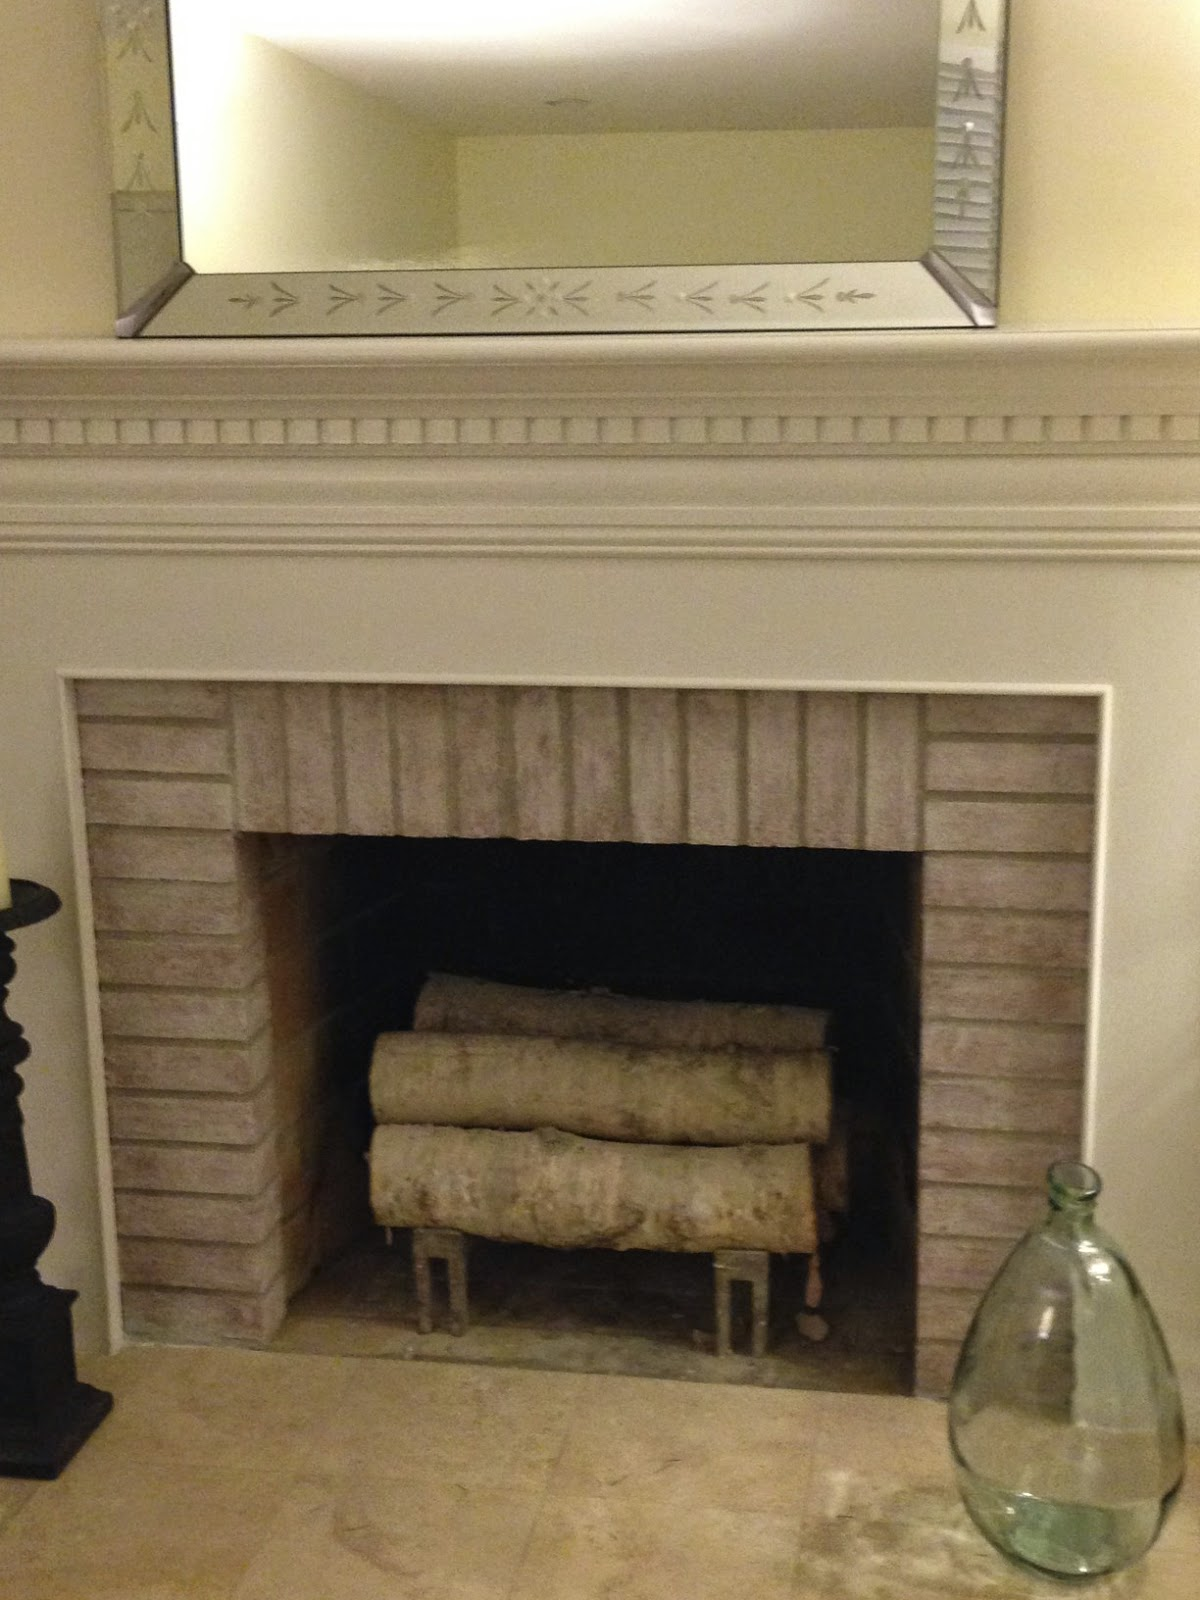 Over the holidays when catching up on blog reading, one of the blogs I love  mentioned painting the INSIDE of the fireplace black. I had wondered if  this was ...